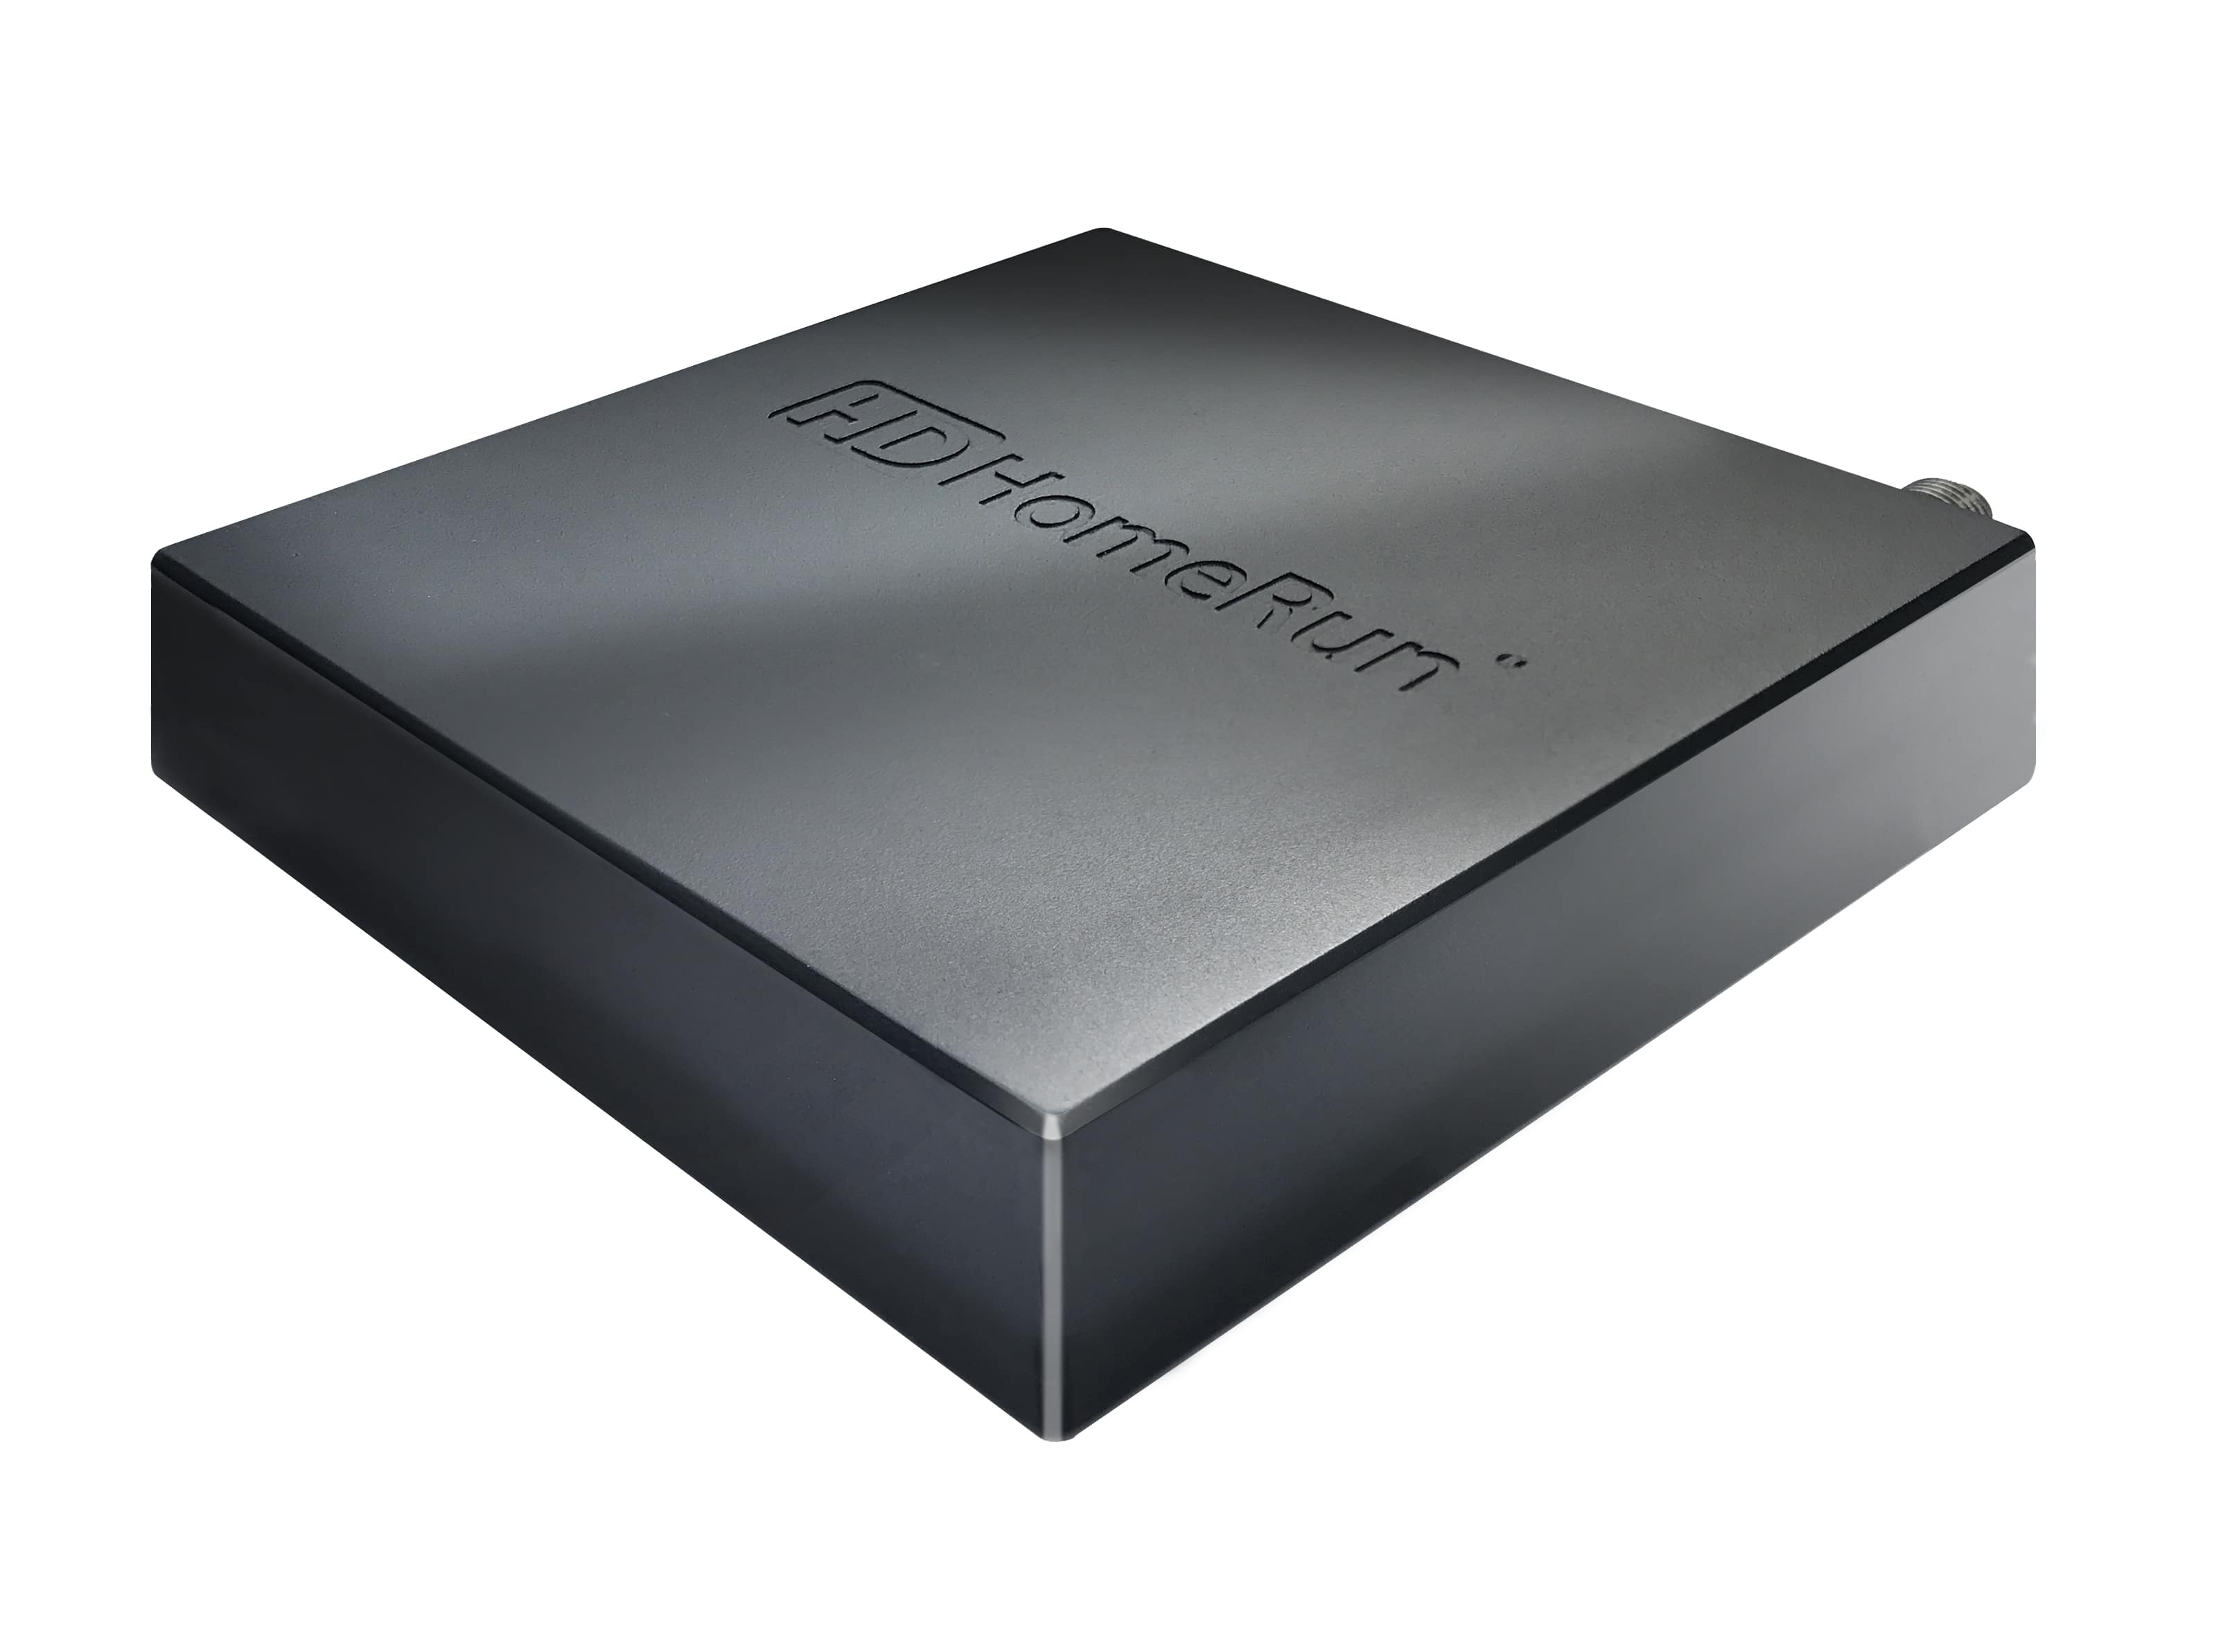 SiliconDust HDHomeRun Connect Duo 2-Tuner $69.99 - Free S&H